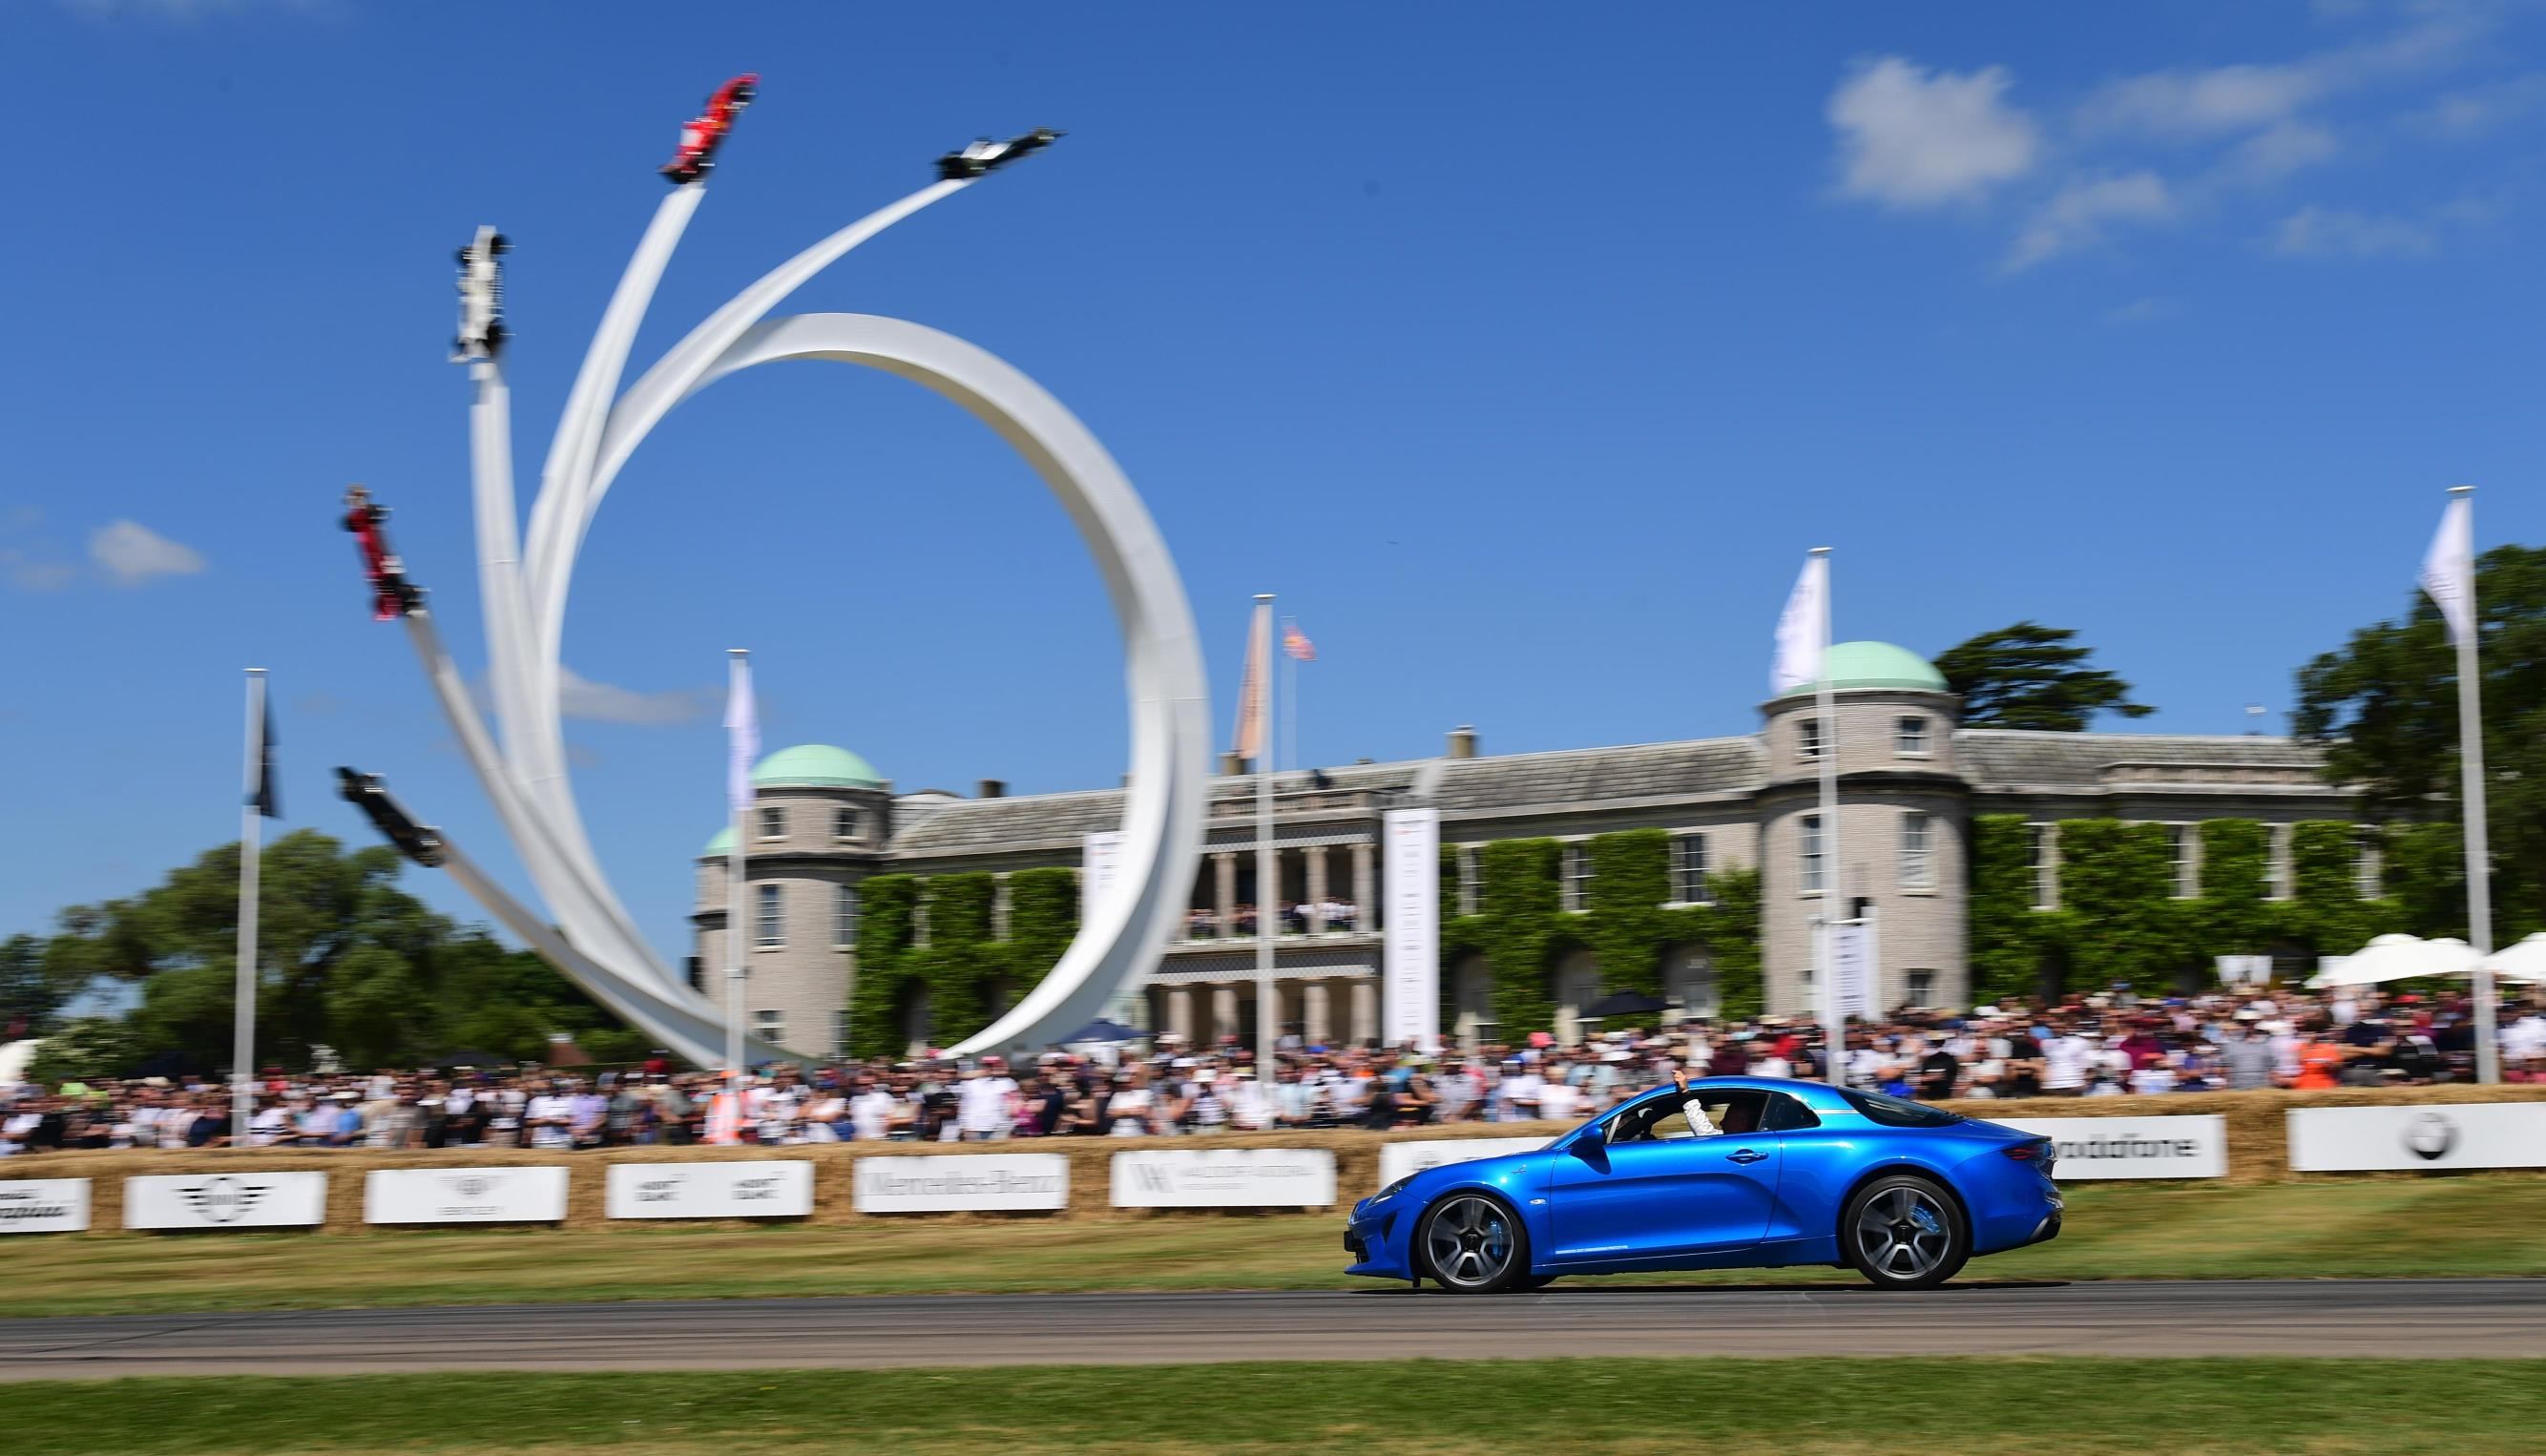 The Festival of Speed is one of the key events of the year